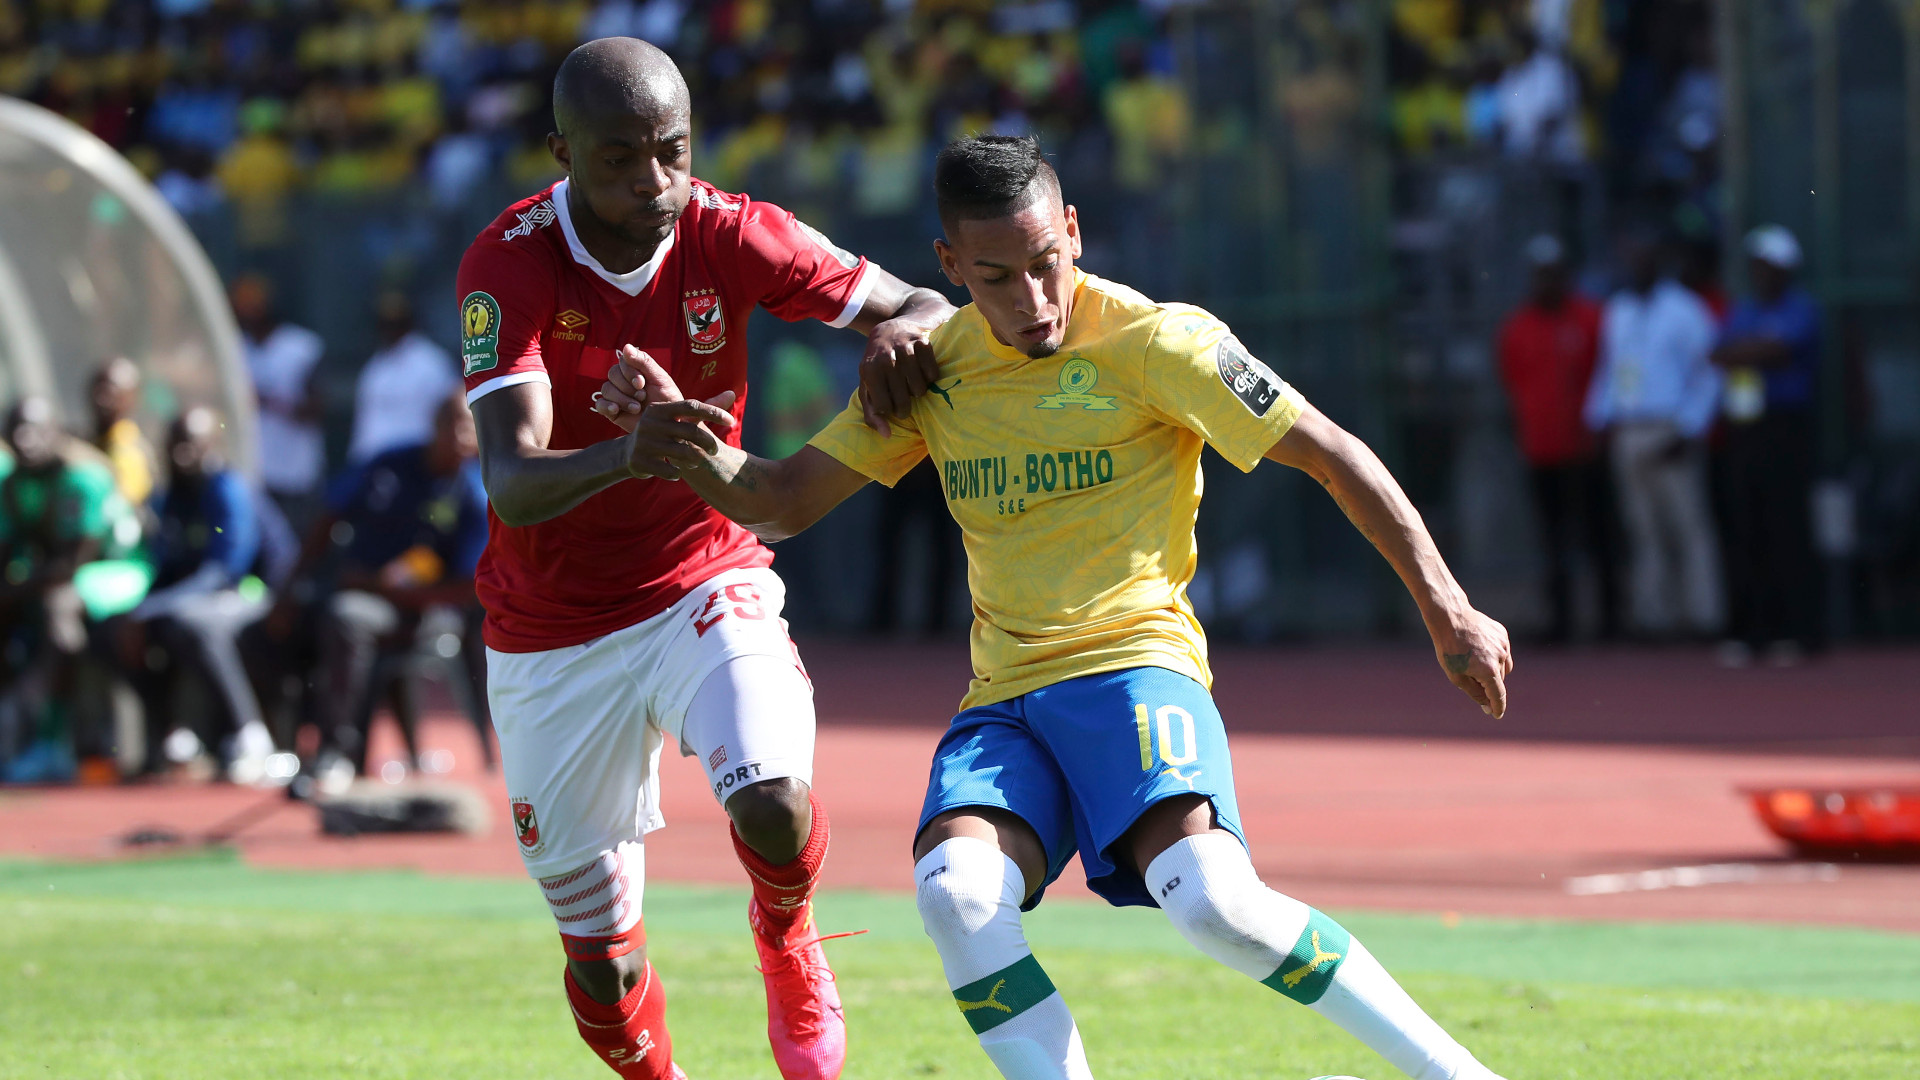 Sirino and Morena's new deals a good sign that Mamelodi Sundowns want to challenge Al Ahly - Sapula